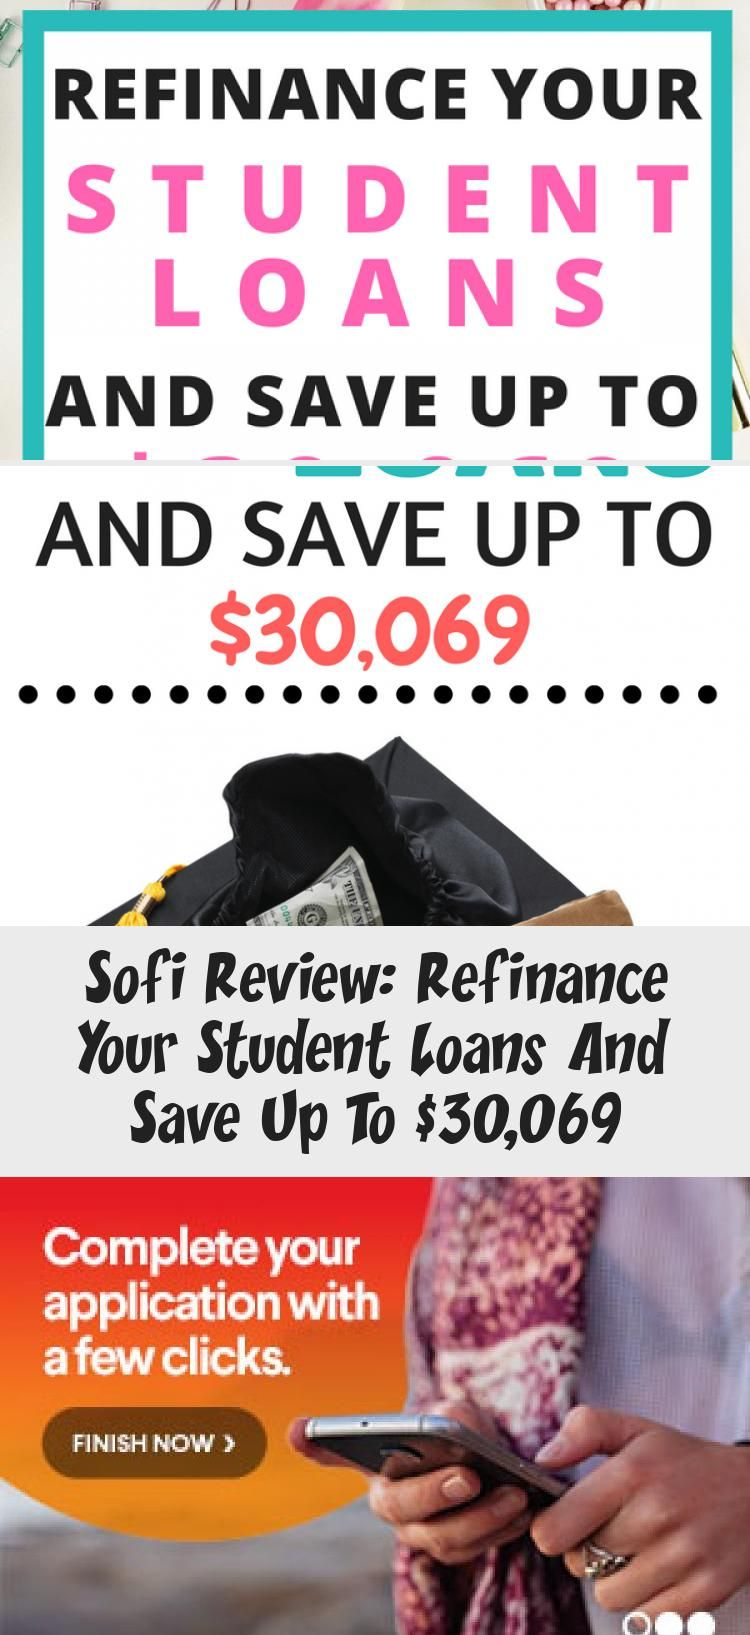 Sofi Review Refinance Your Student Loans And Save Up To 30 069 Student Loans Student Credit Score